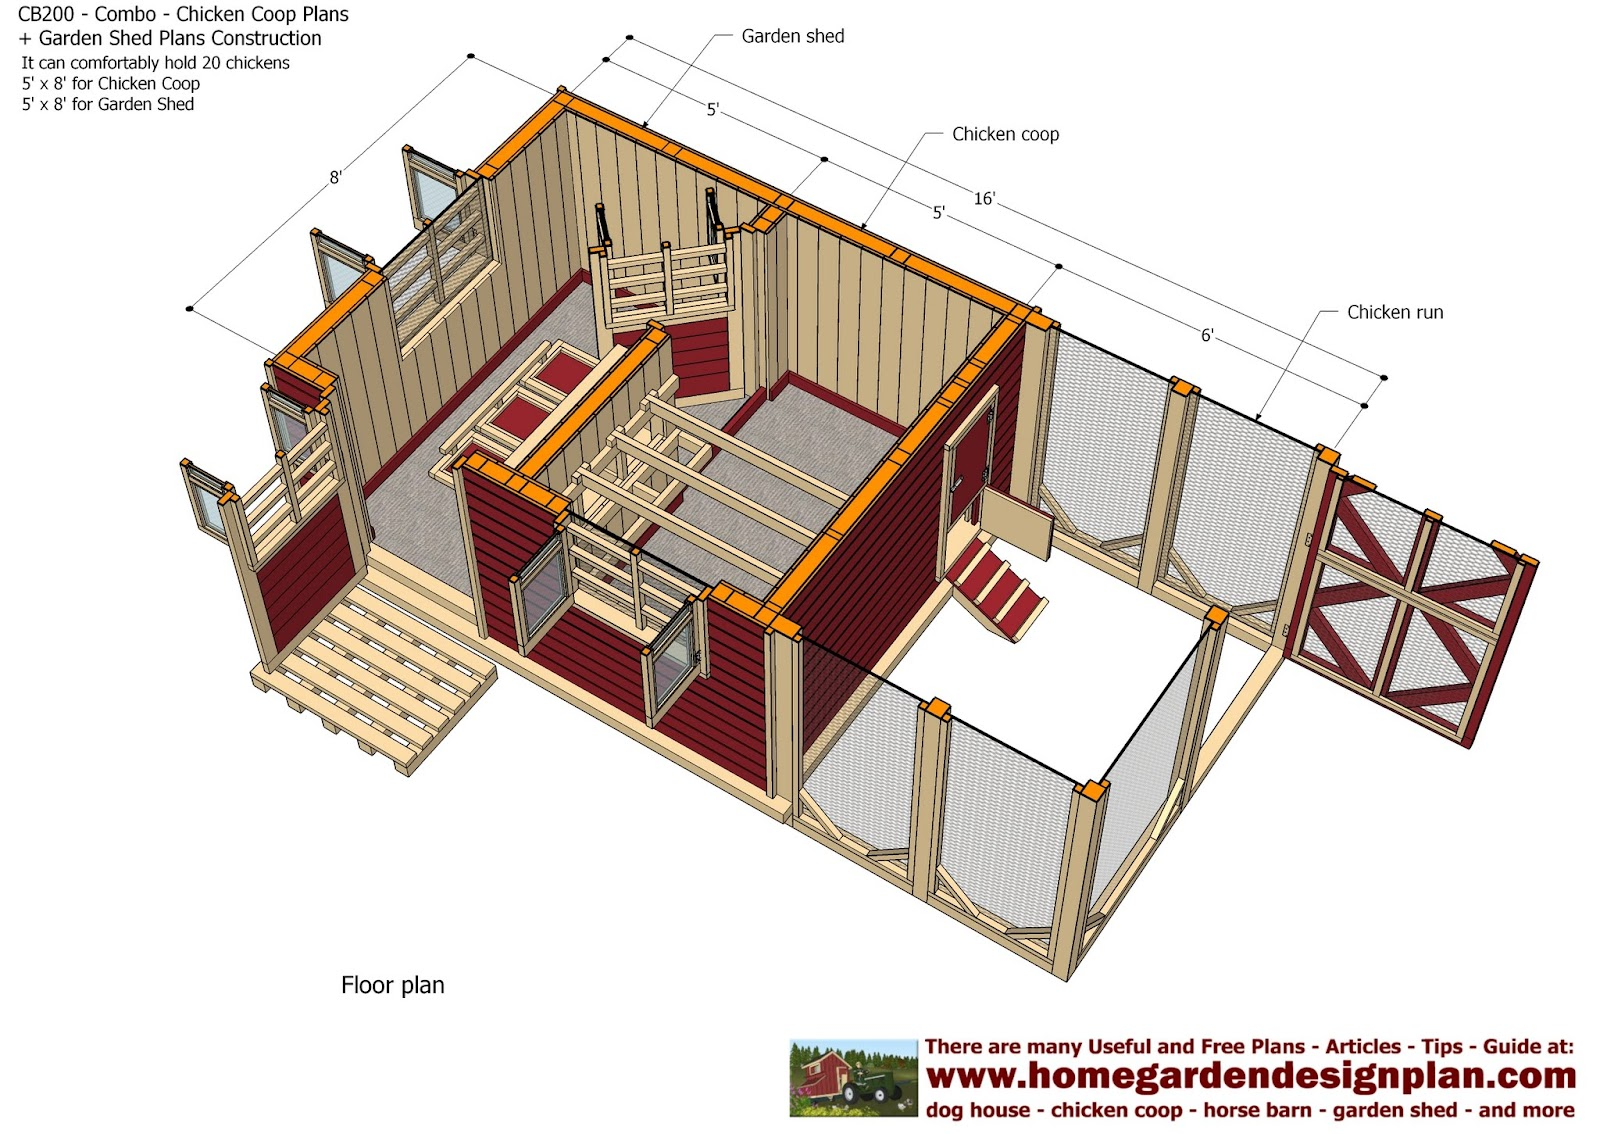 Home garden plans cb200 combo plans chicken coop for Shed floor plans